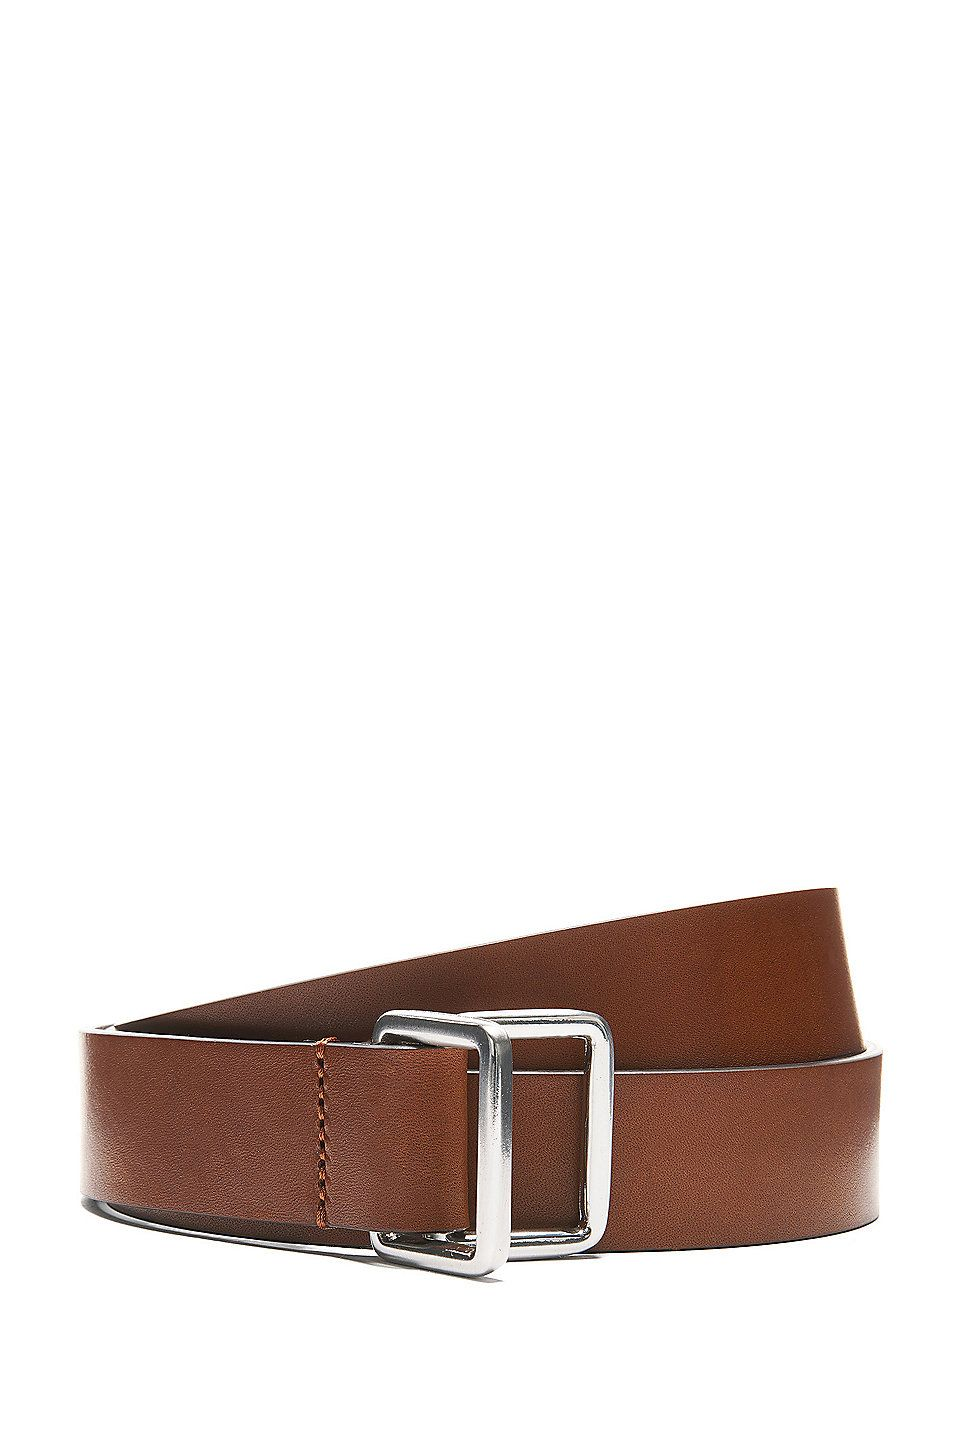 Hugo Boss Smooth Italian Leather Belt With Double D Ring Closure